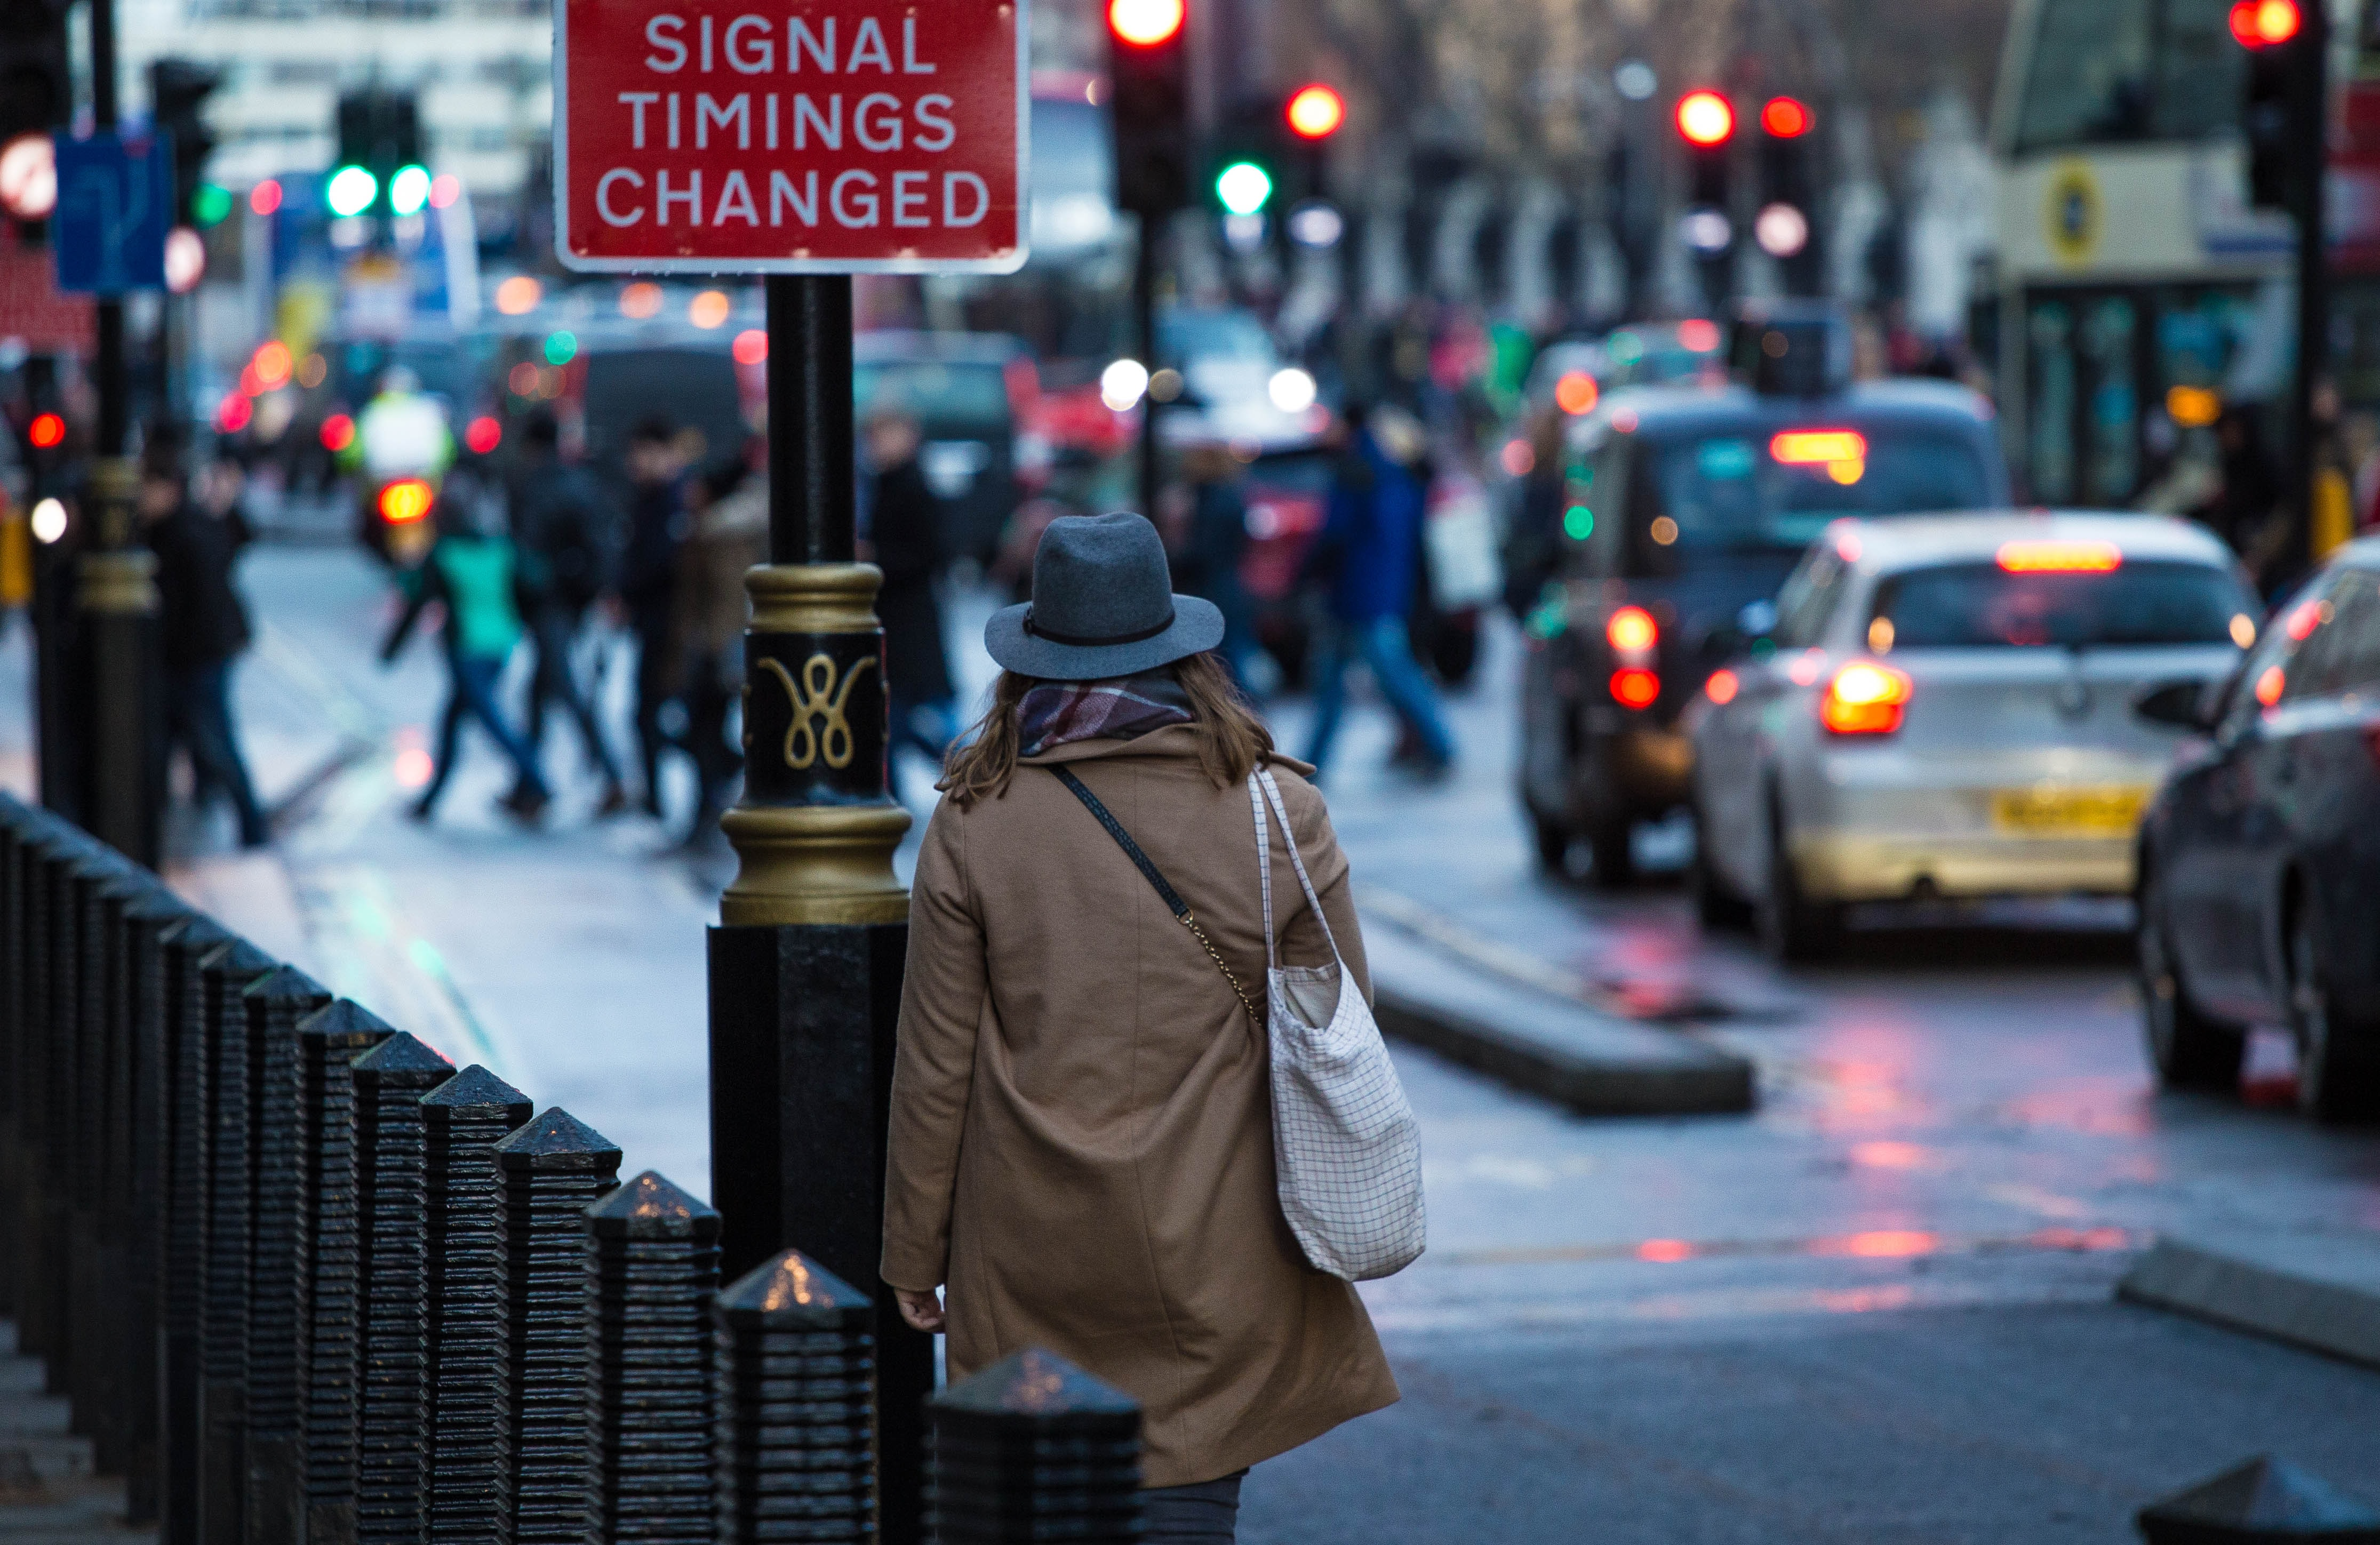 woman walking on sidewalk near red and white signal thing changed road signage